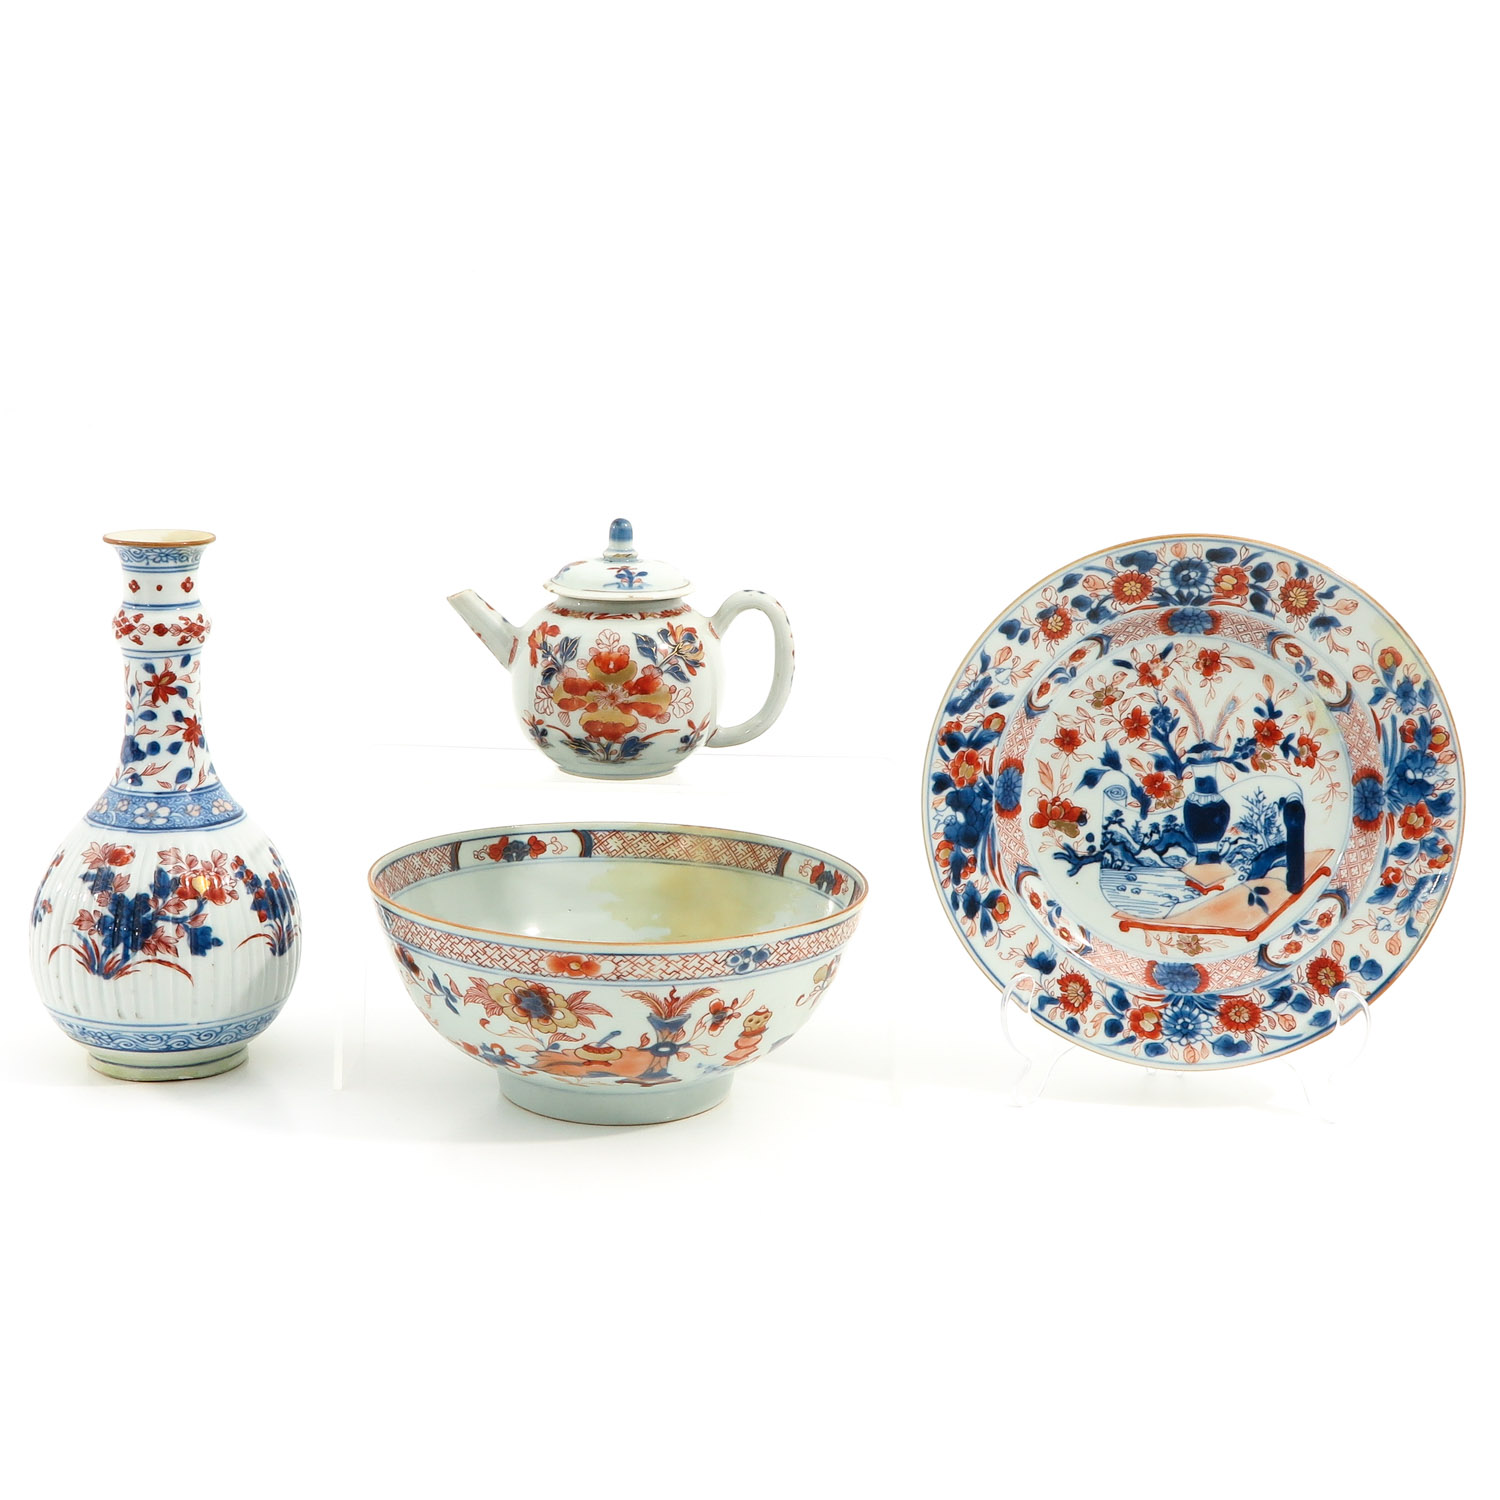 A Collection of Imari